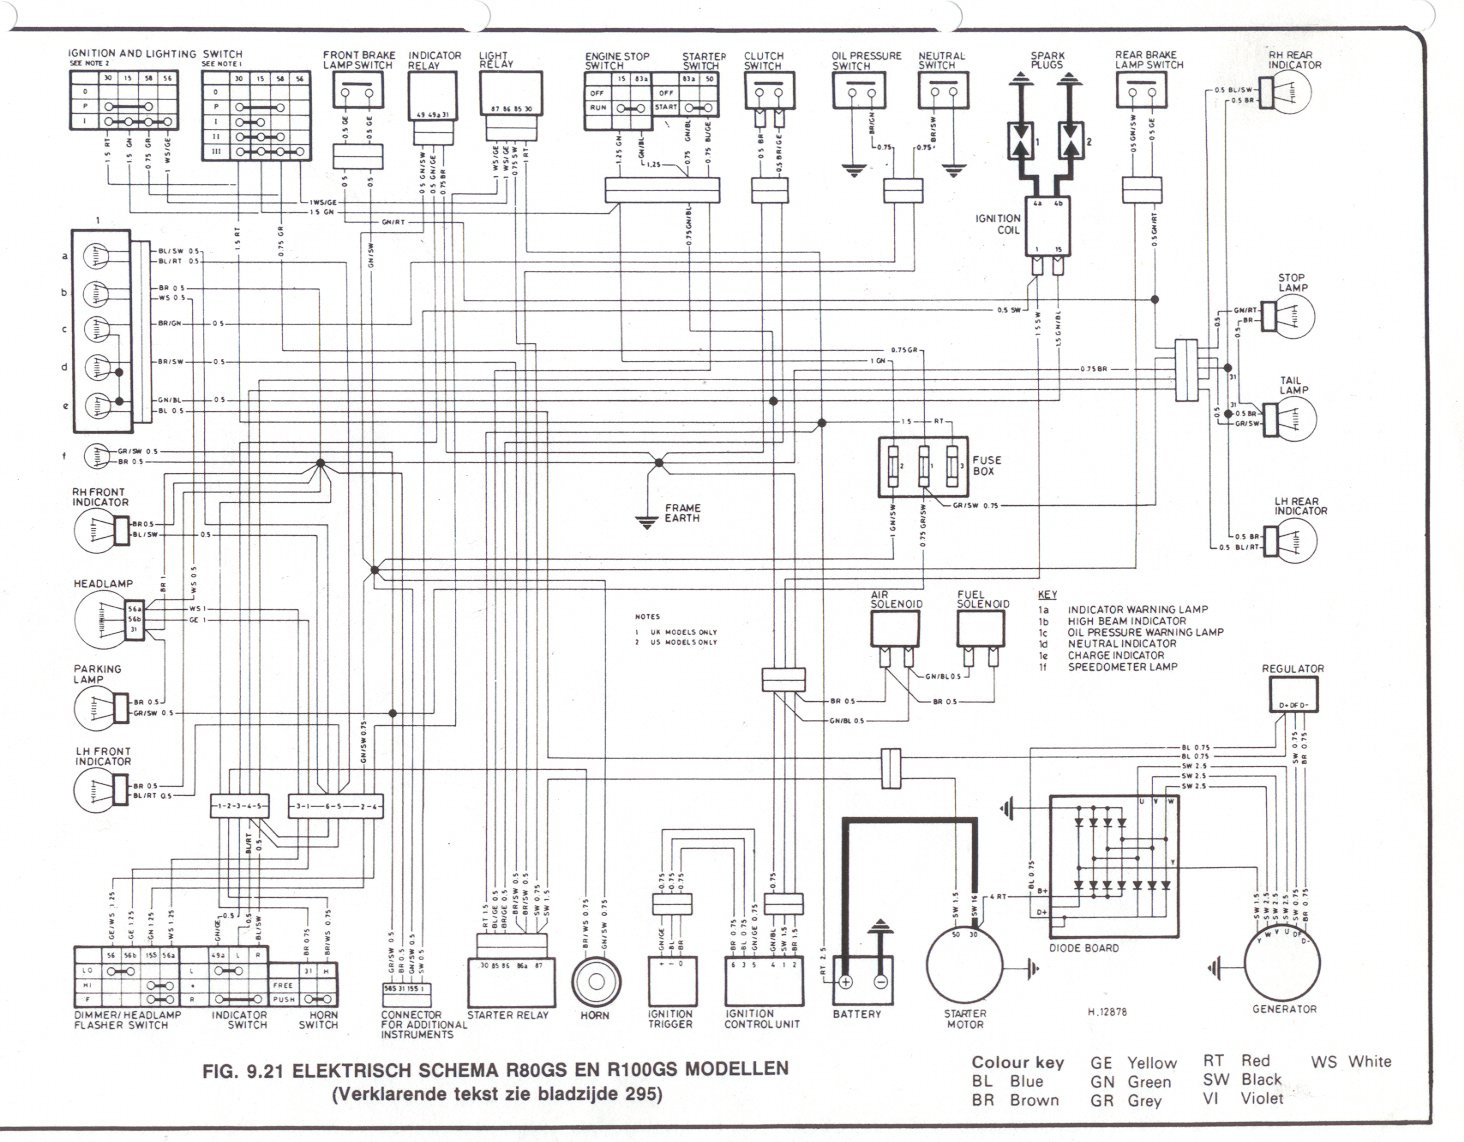 small resolution of 2001 vw gti stereo wiring diagram auto electrical wiring diagram wiring diagram rinker 270 2002